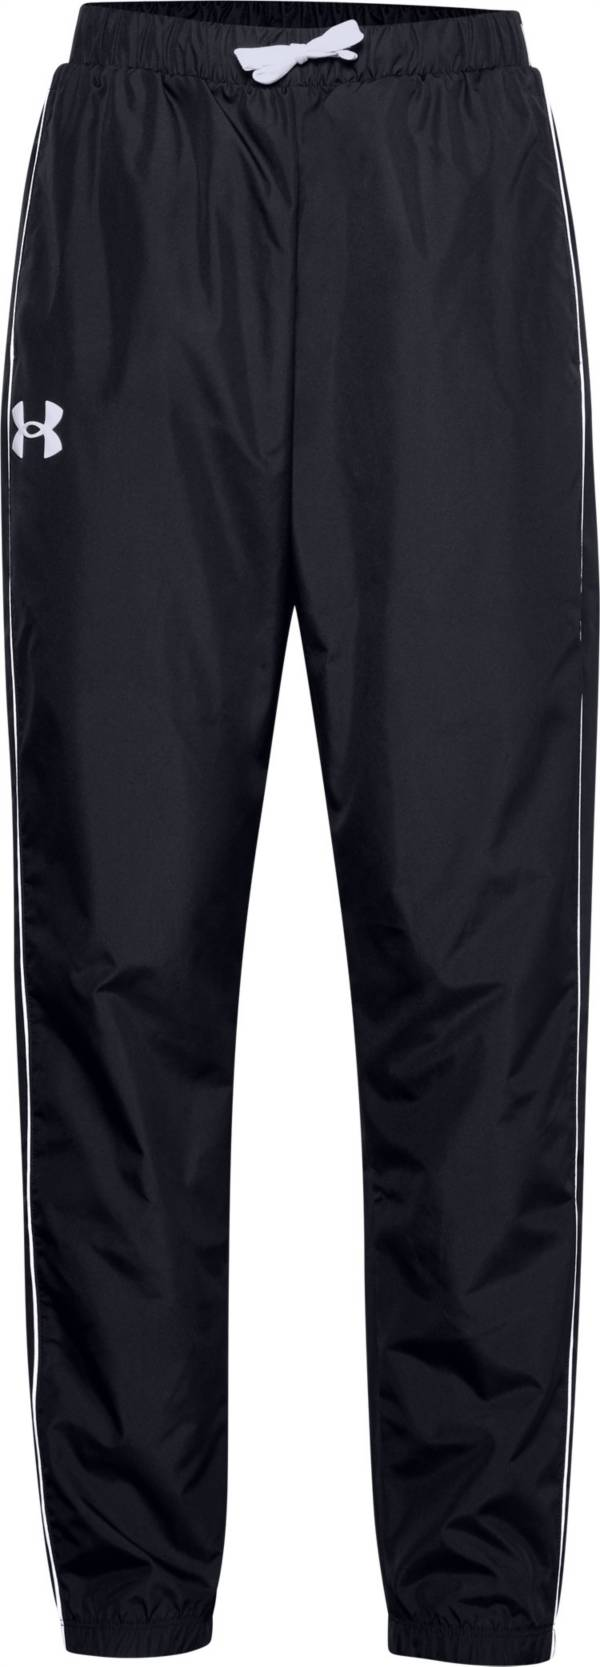 Under Armour Girls' Woven Play Up Pants product image